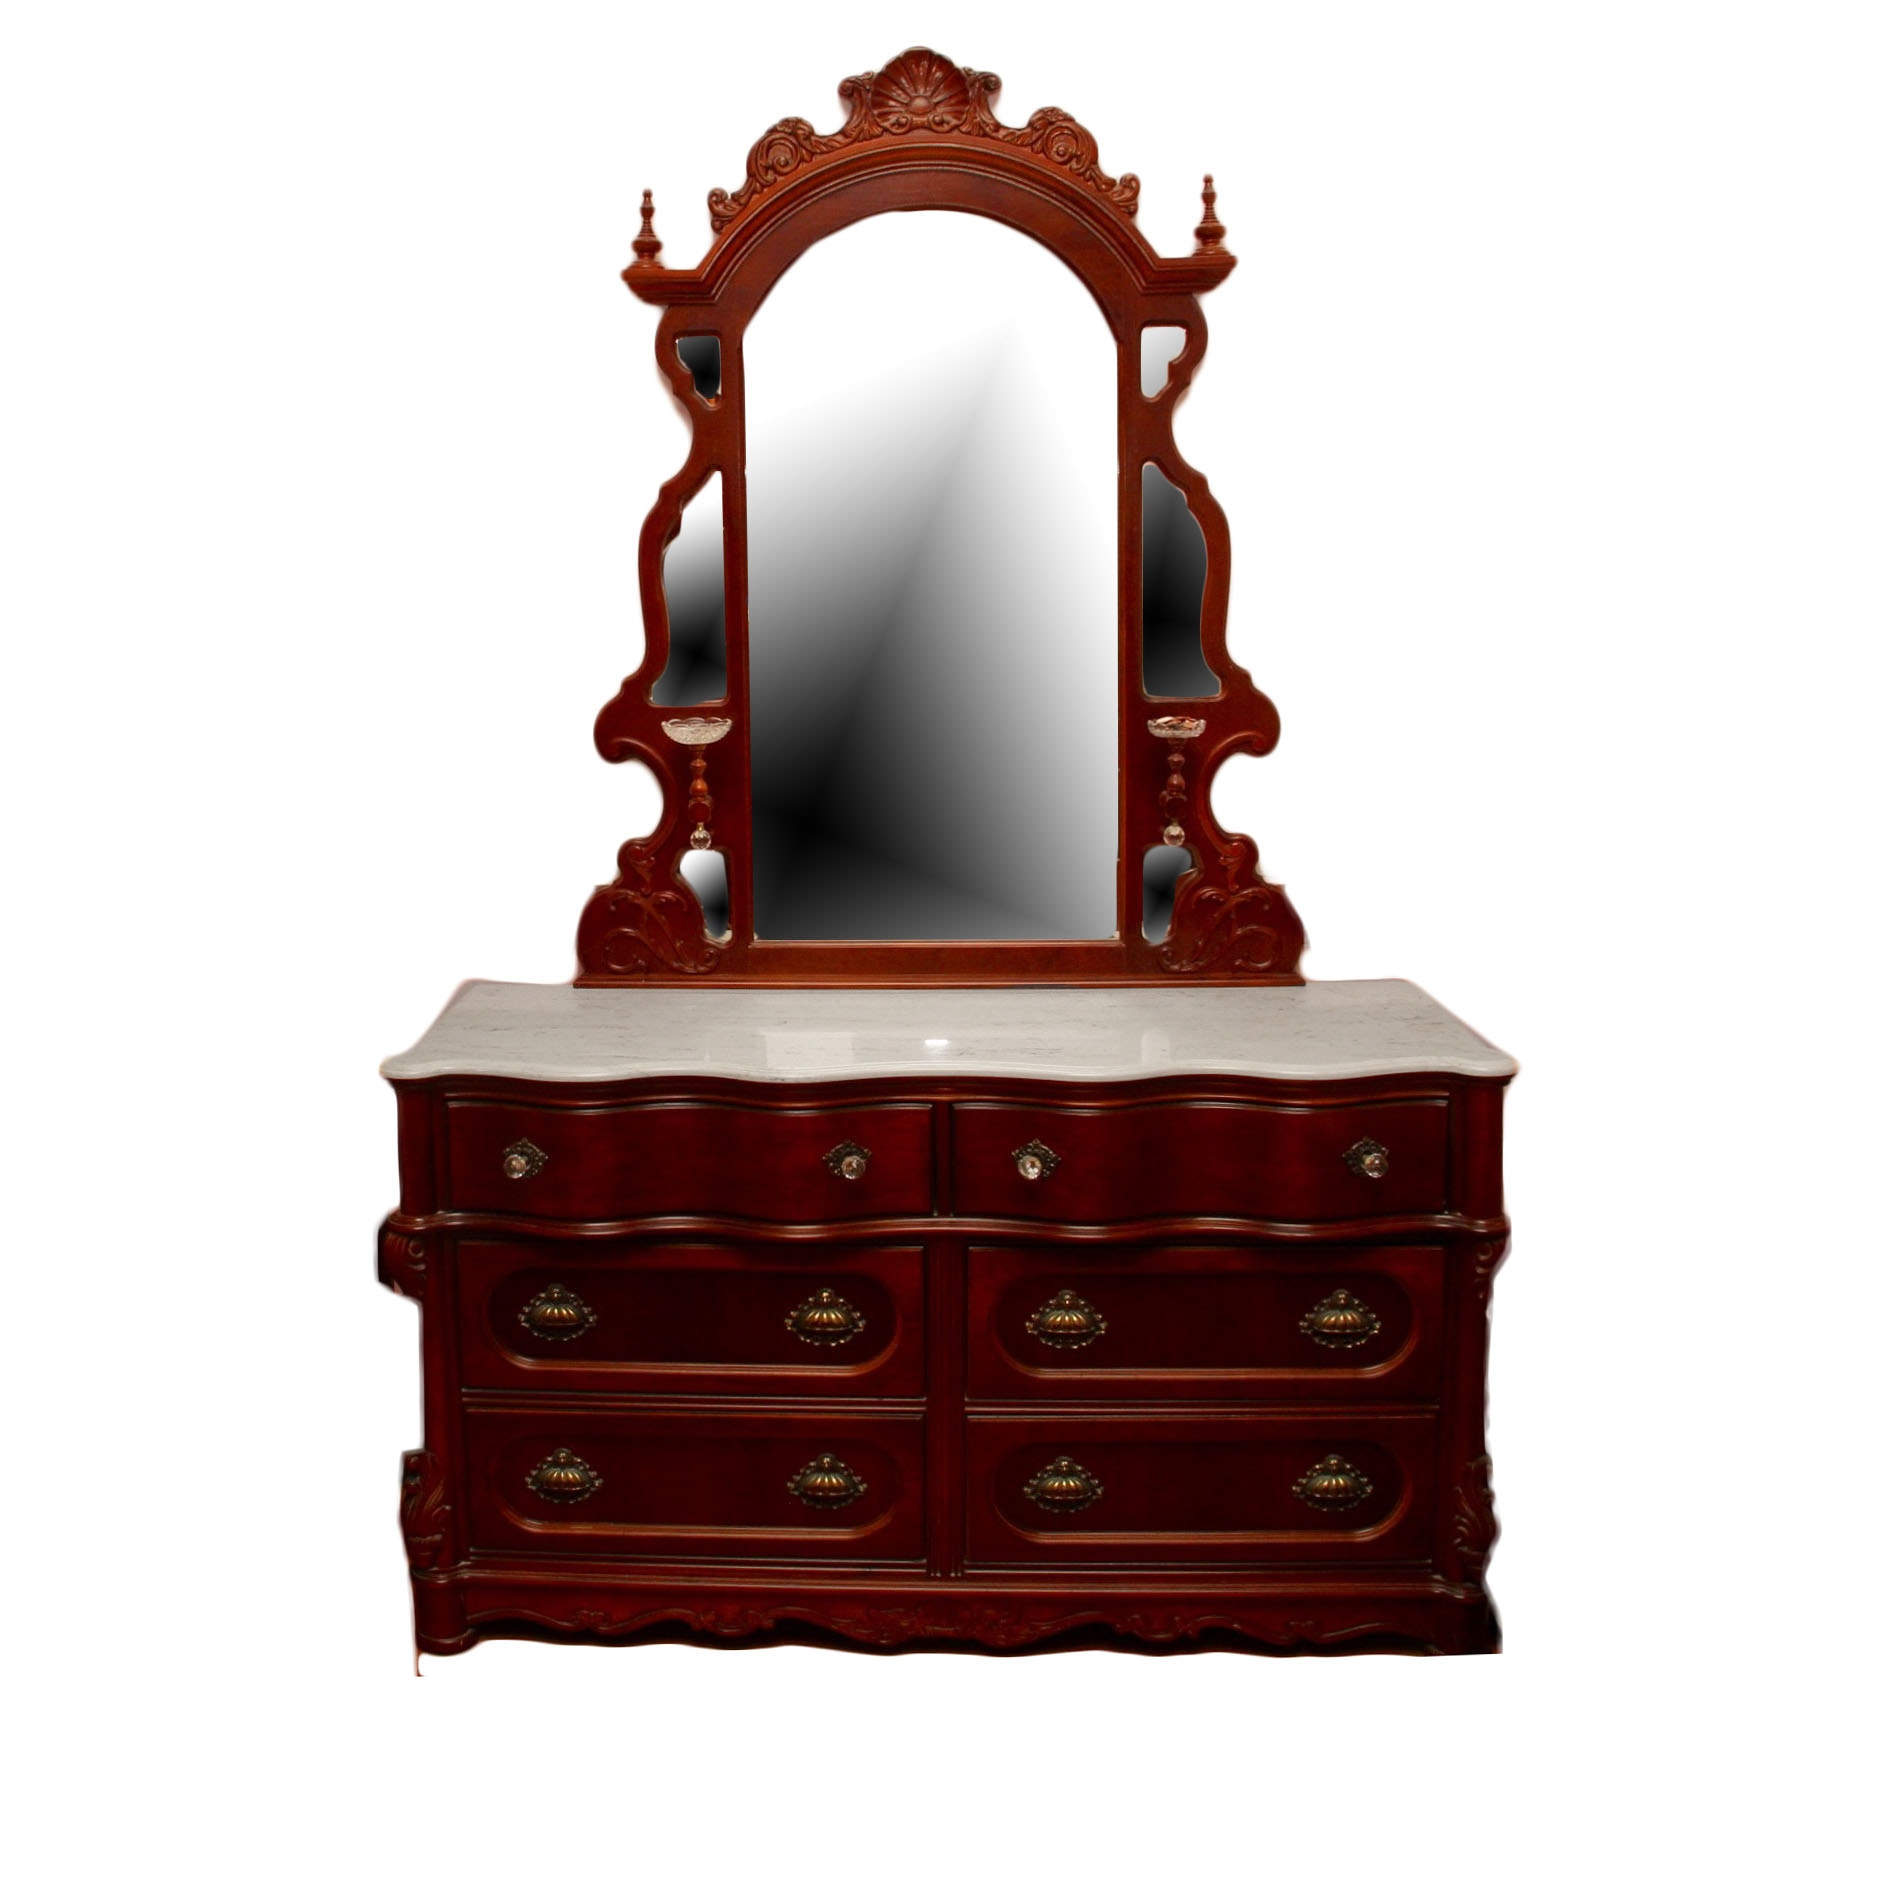 High Quality Pulaski Furniture Mahogany Reproduction Victorian Style Marble Top Dresser  With Mirror ...